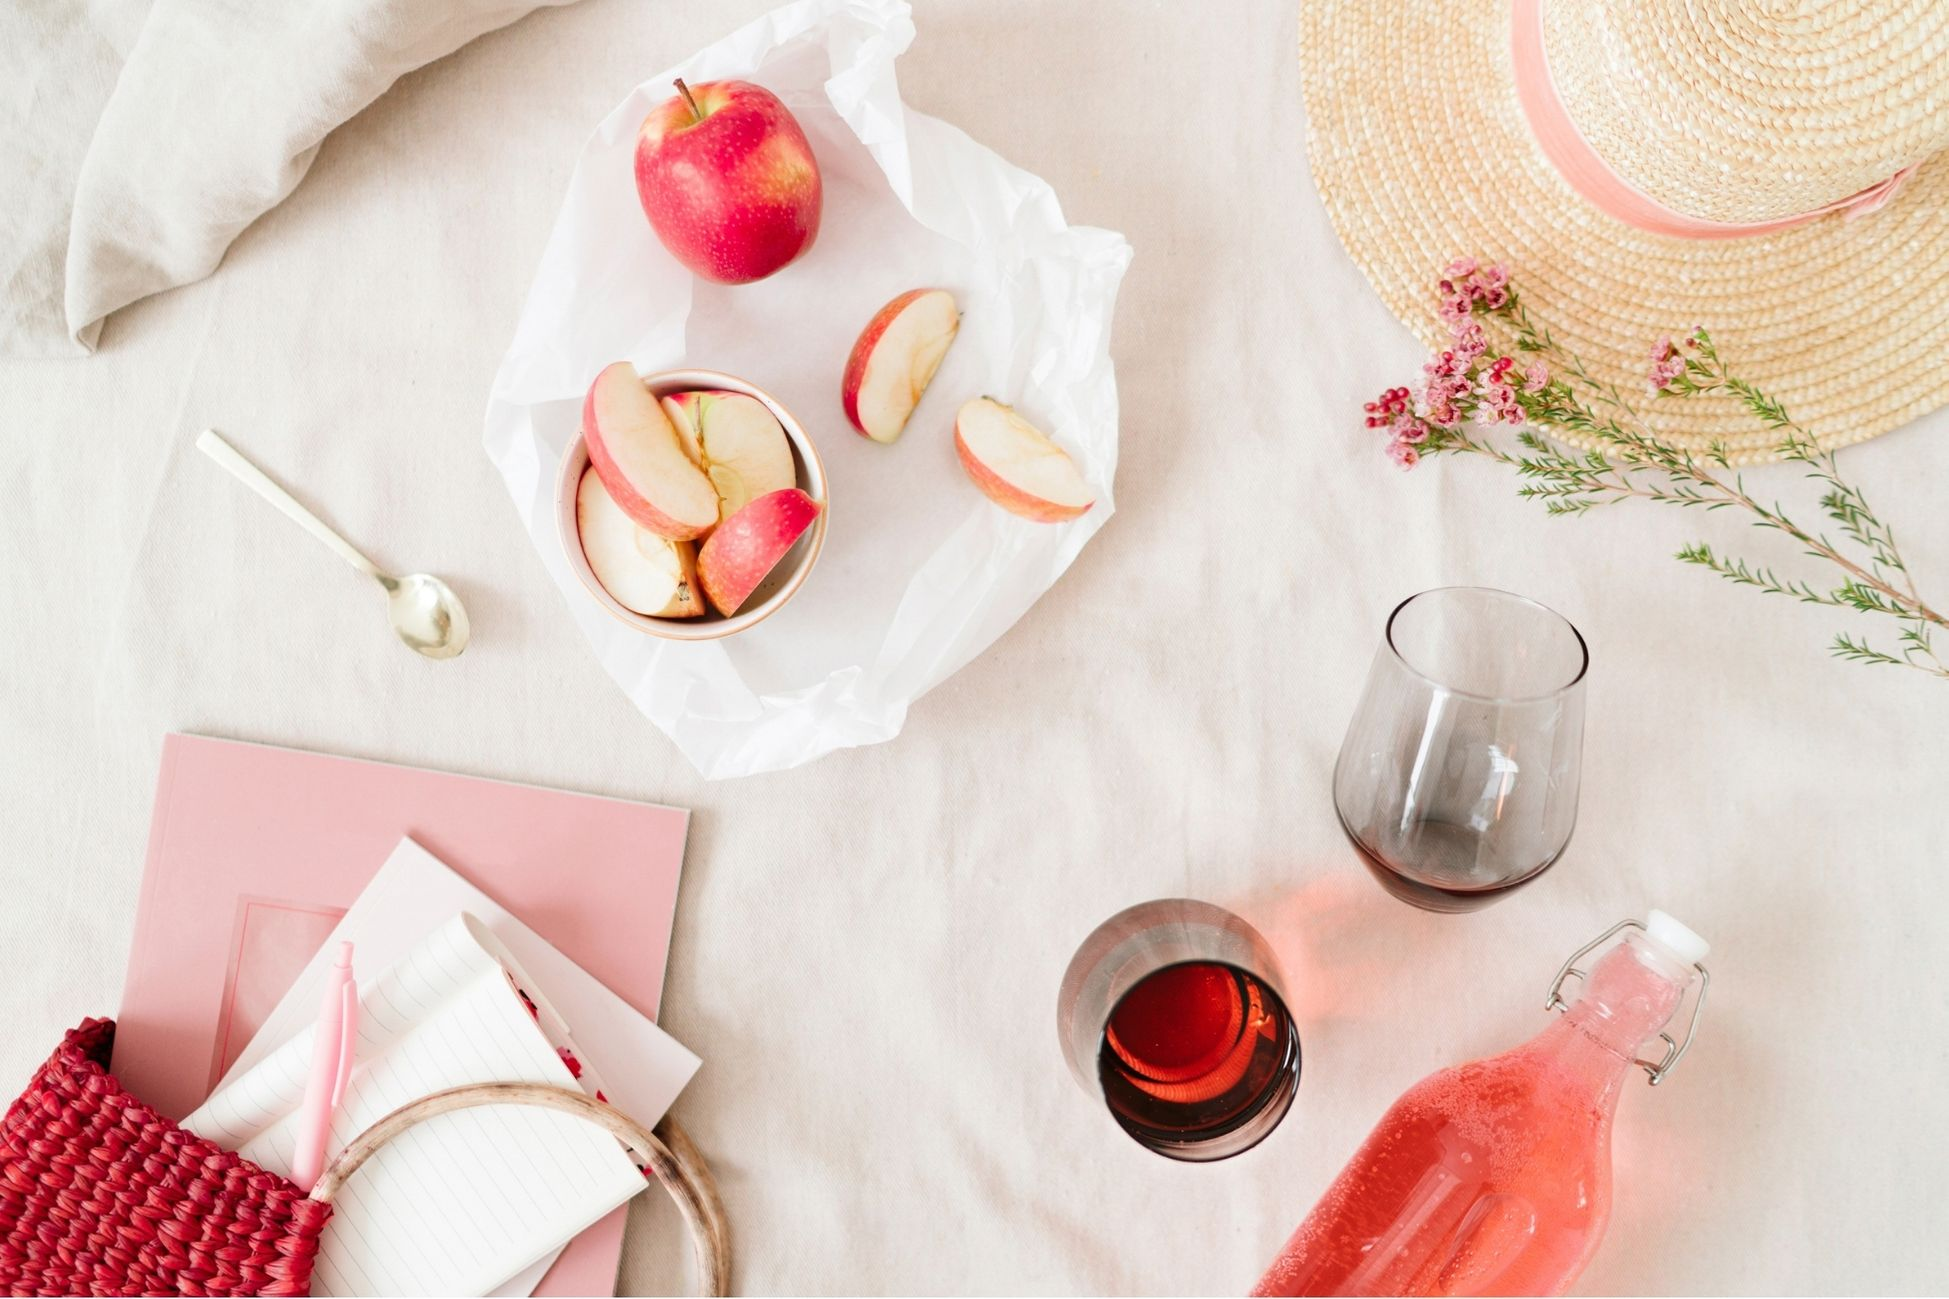 a self-care collection of a journal, fresh apple slices, wine, flowers and a sun hat on a white background.